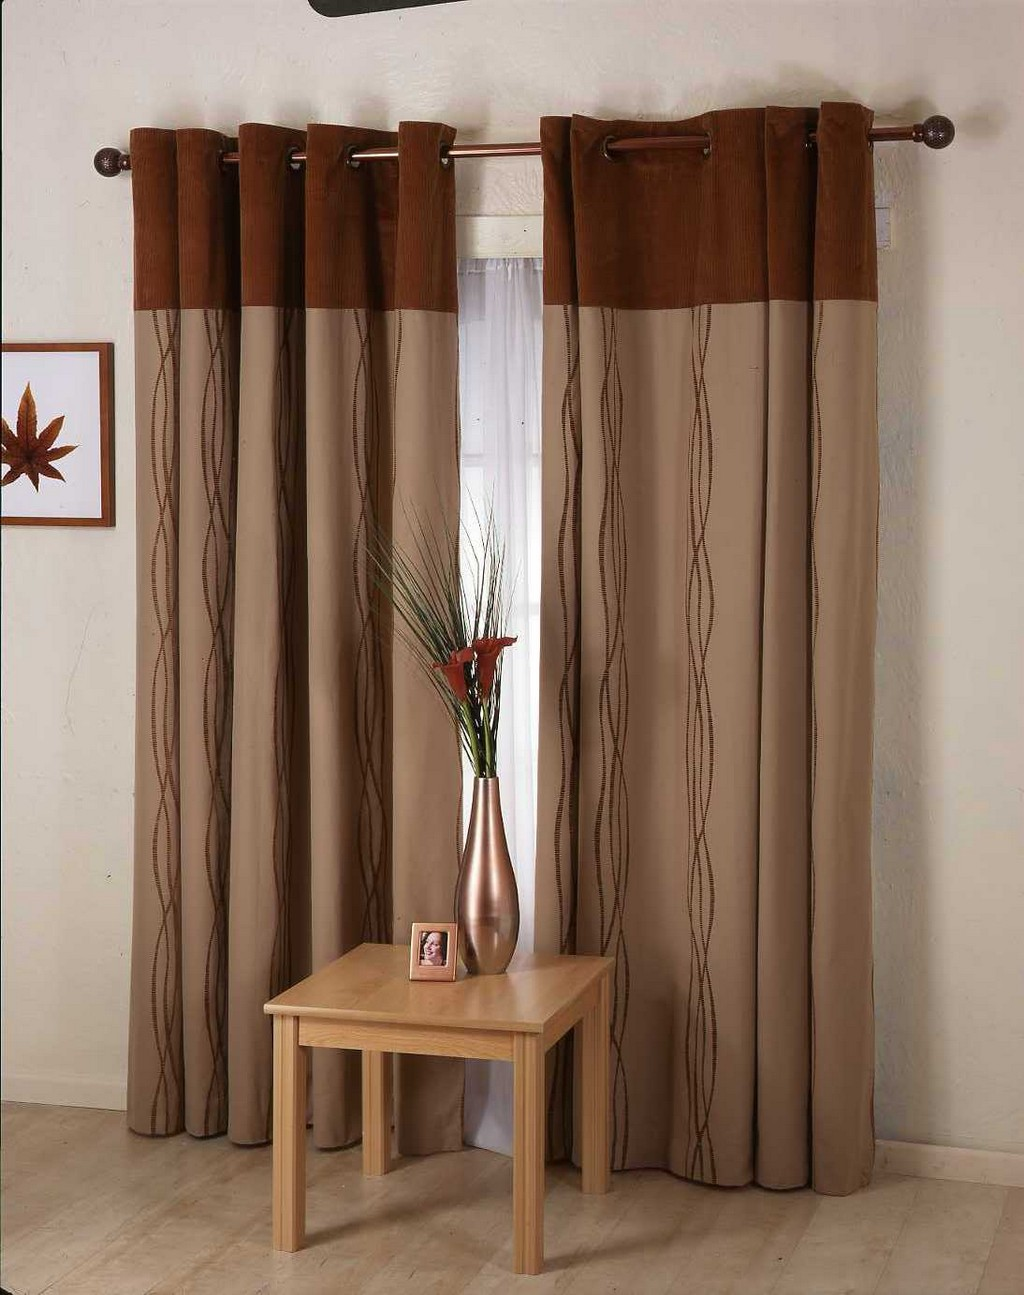 oversized shower curtains, toile shower curtain, curtain rods curved shower bathroom remodeling, tucan kitchen curtains